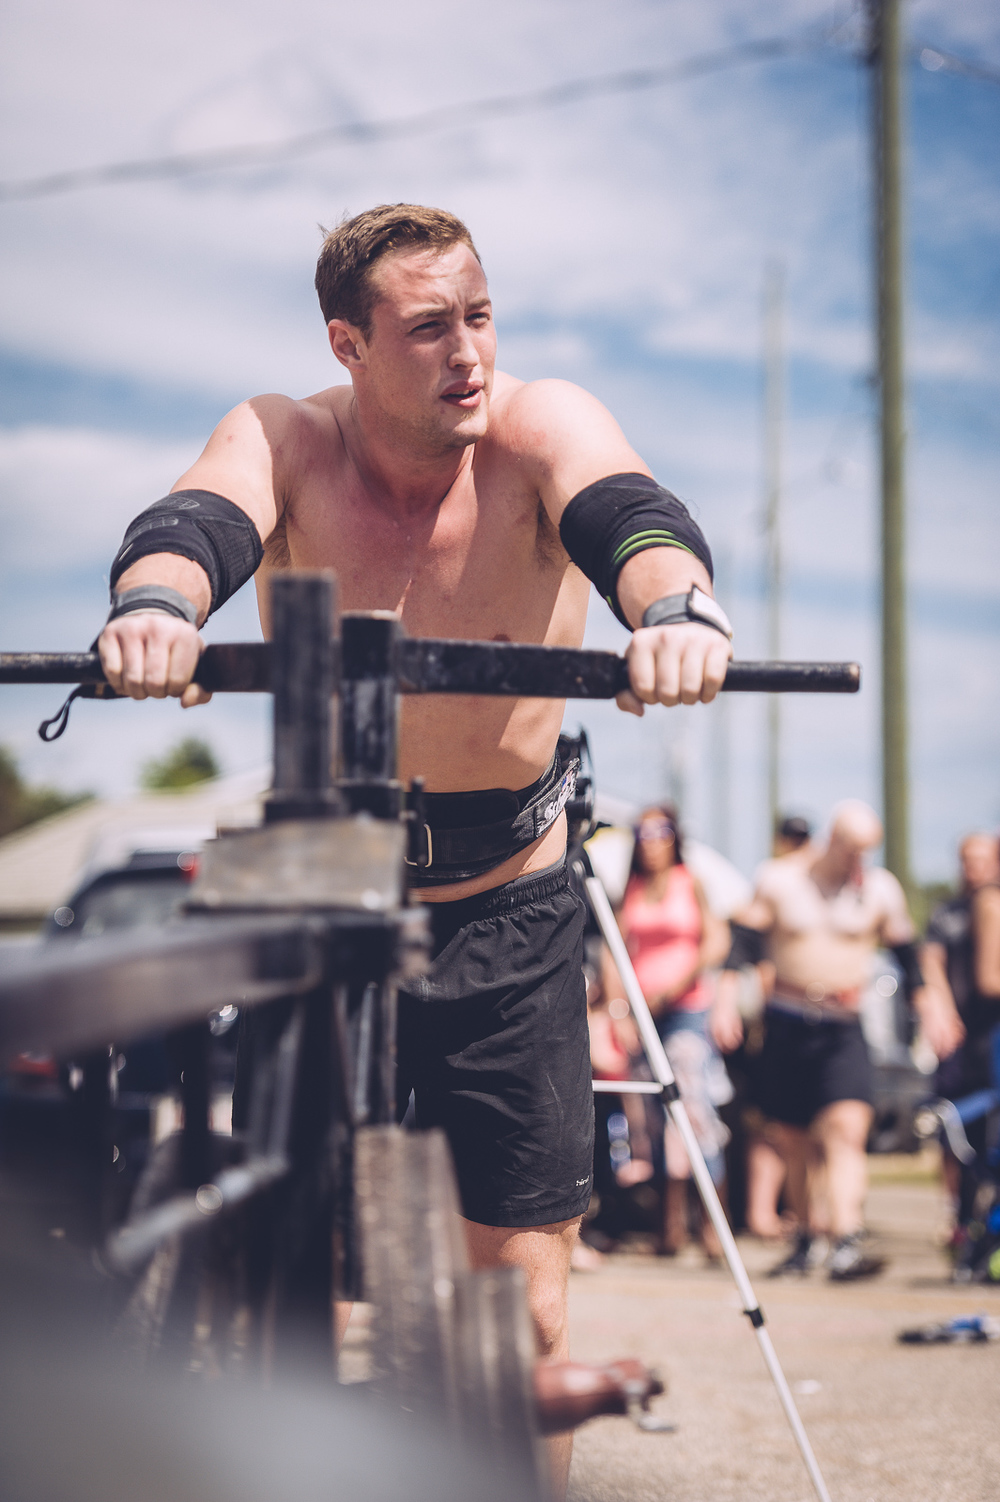 strongman_2015_blog37.jpg